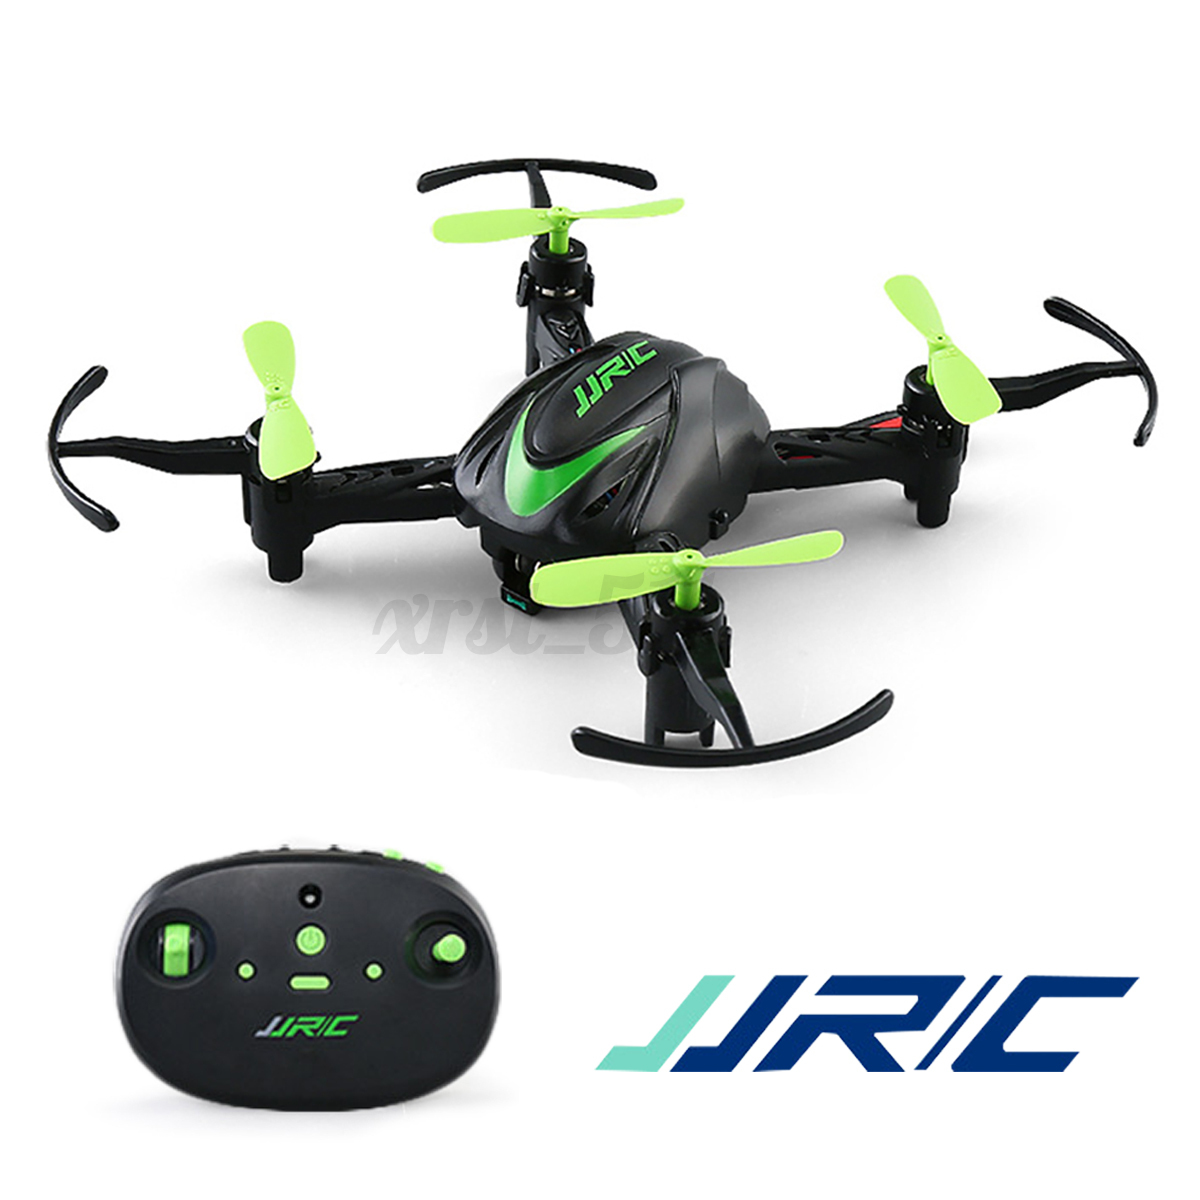 JJRC H48 Mini Drone RC Quadcopter Infrared Control 2.4G 4CH 6 Axis ...